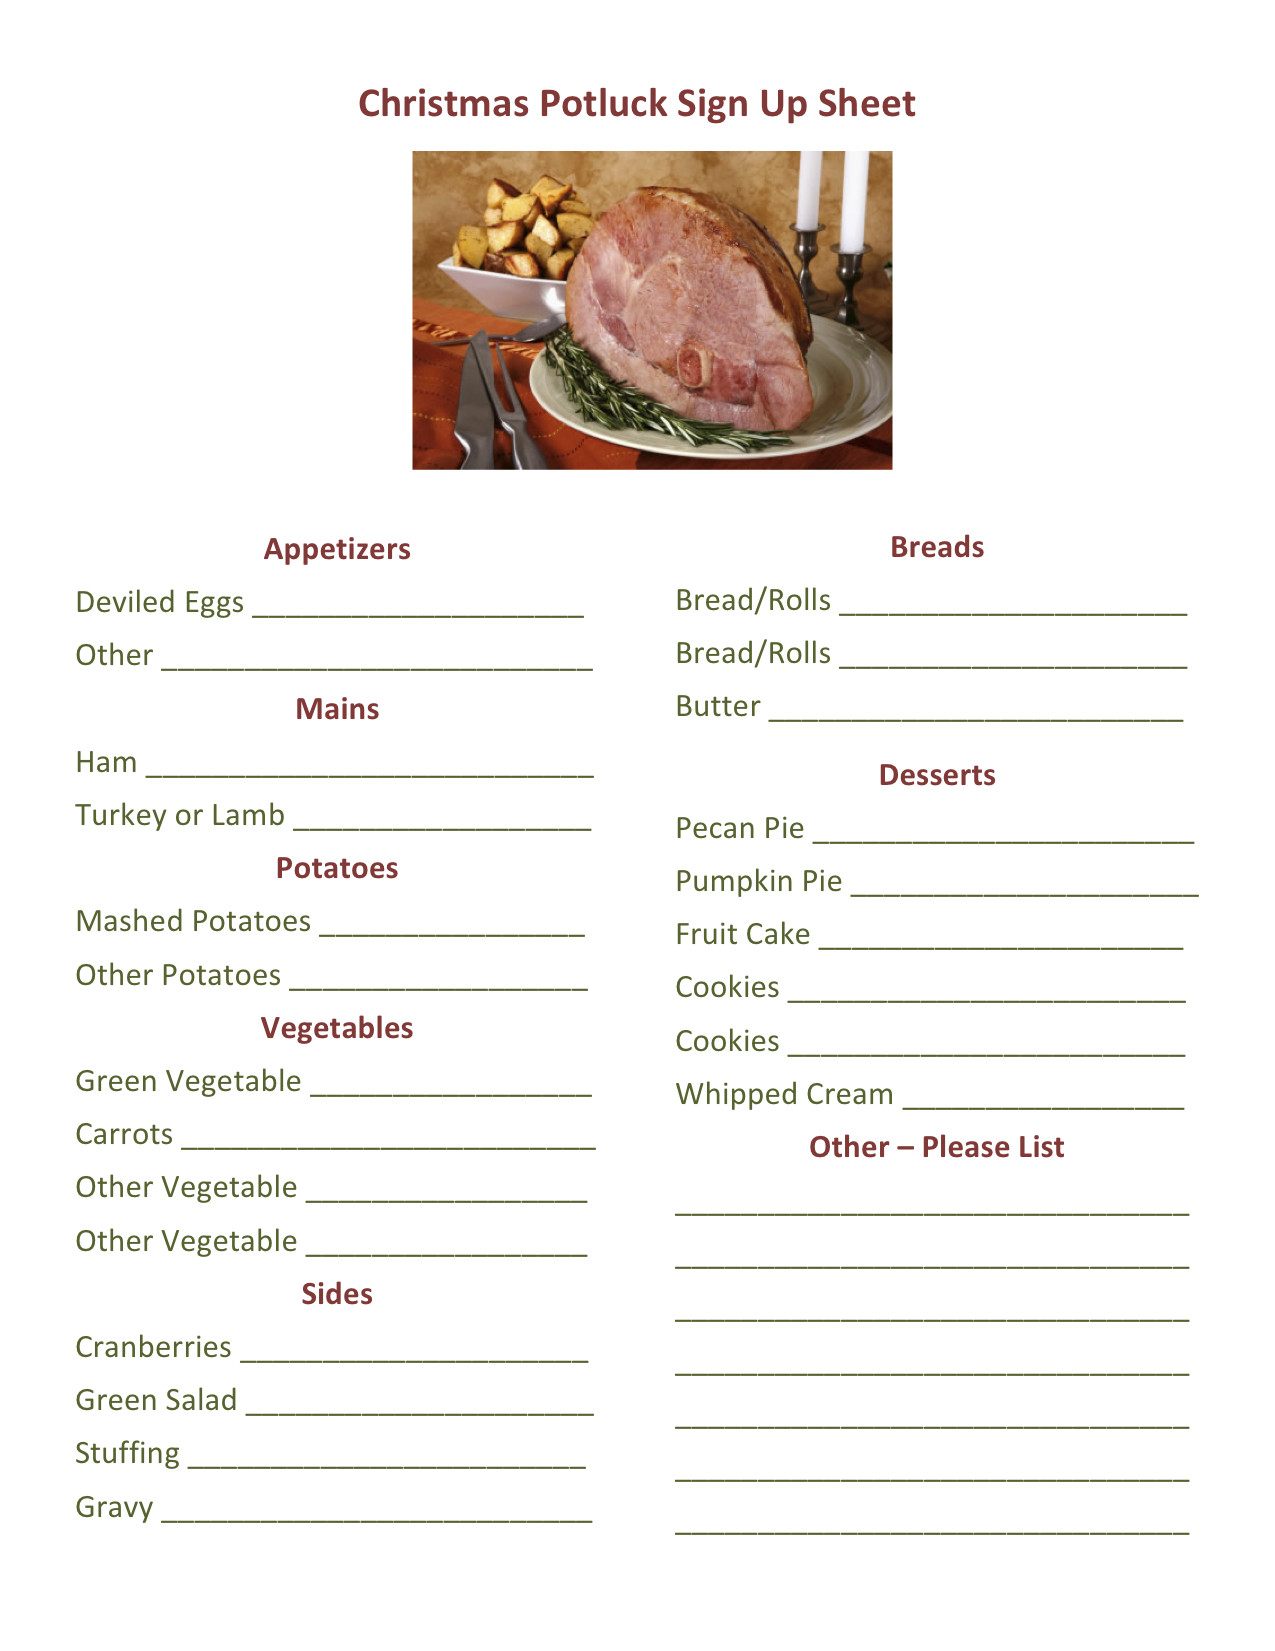 Christmas Potluck Signup Sheet Template 301 Moved Permanently